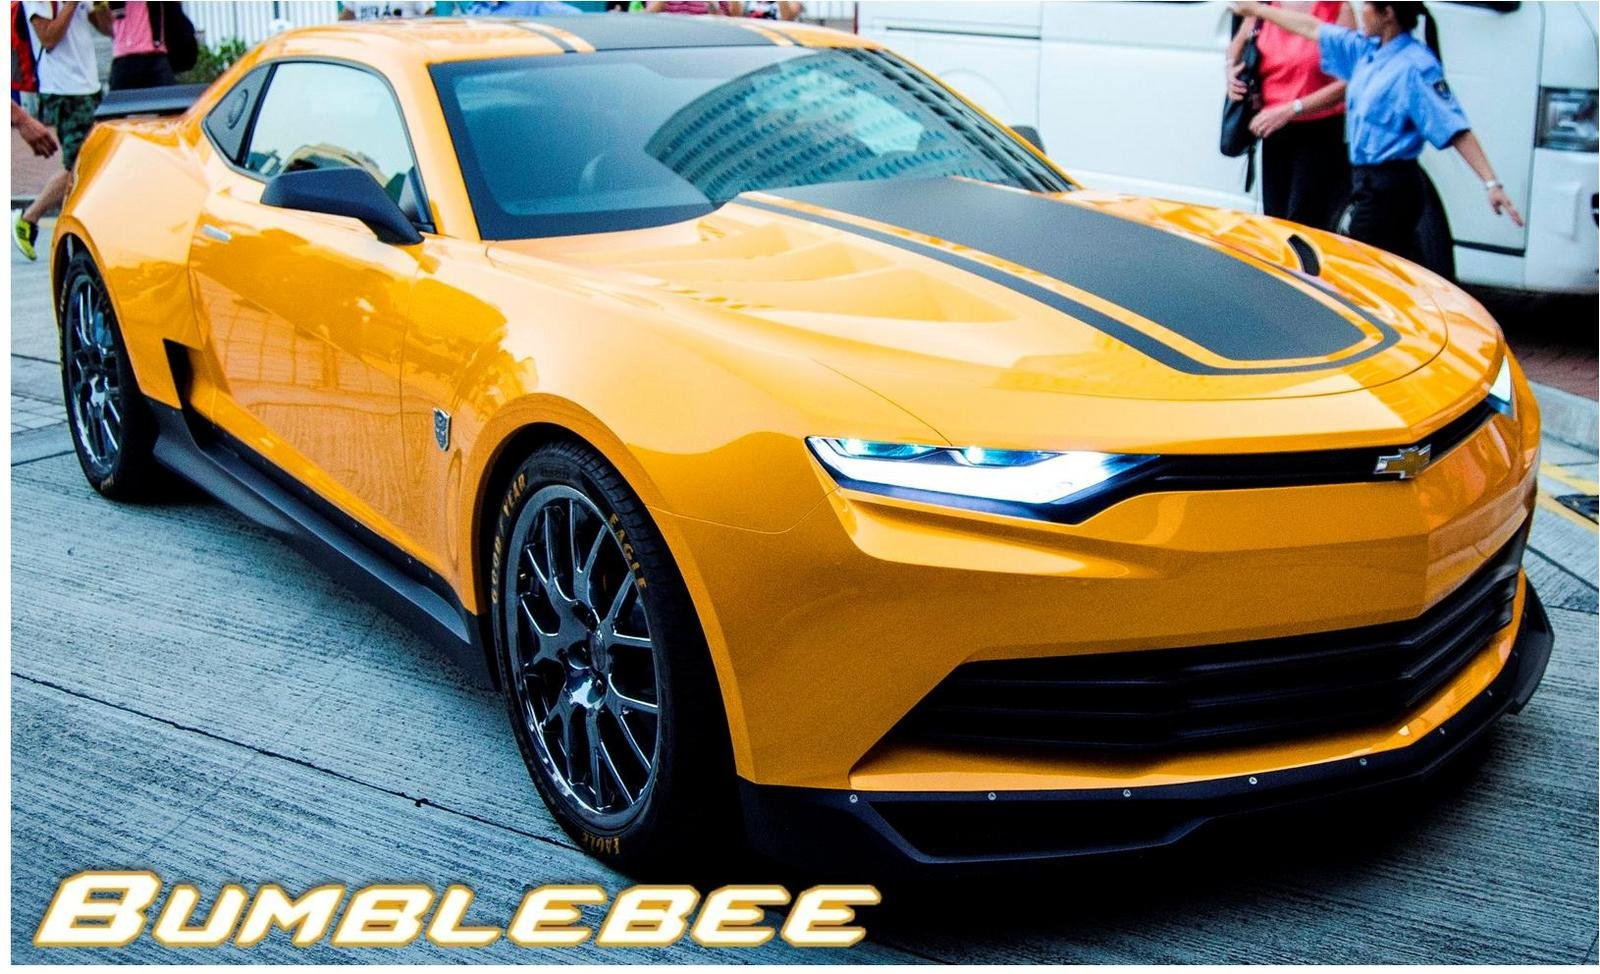 2014 chevrolet transformers 4 bumblebee camaro review. Black Bedroom Furniture Sets. Home Design Ideas